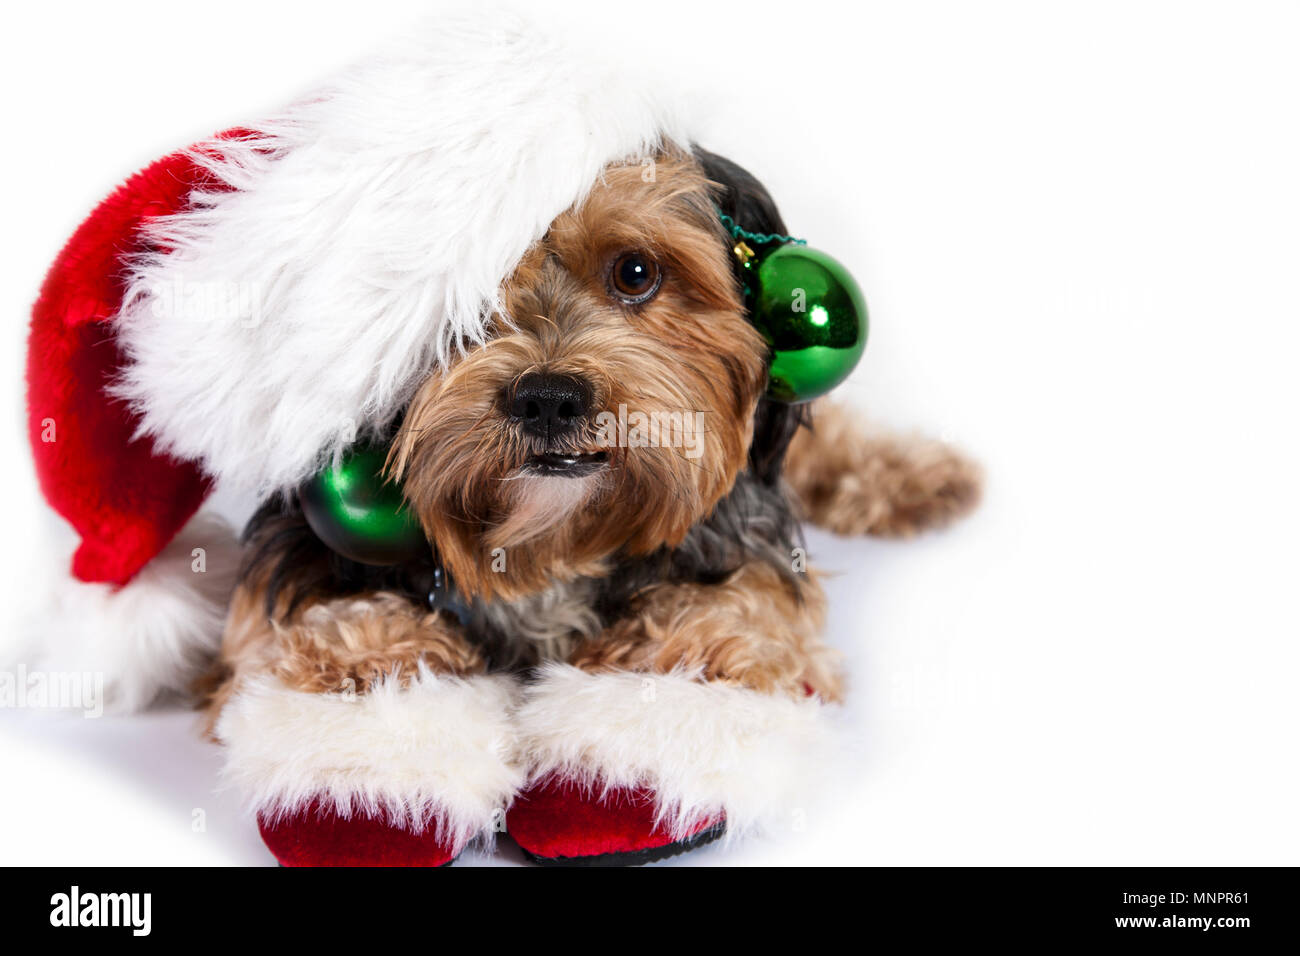 A sweet brown and black dog decorated with a Santa hat and slippers and green holiday ornaments in studio - Stock Image